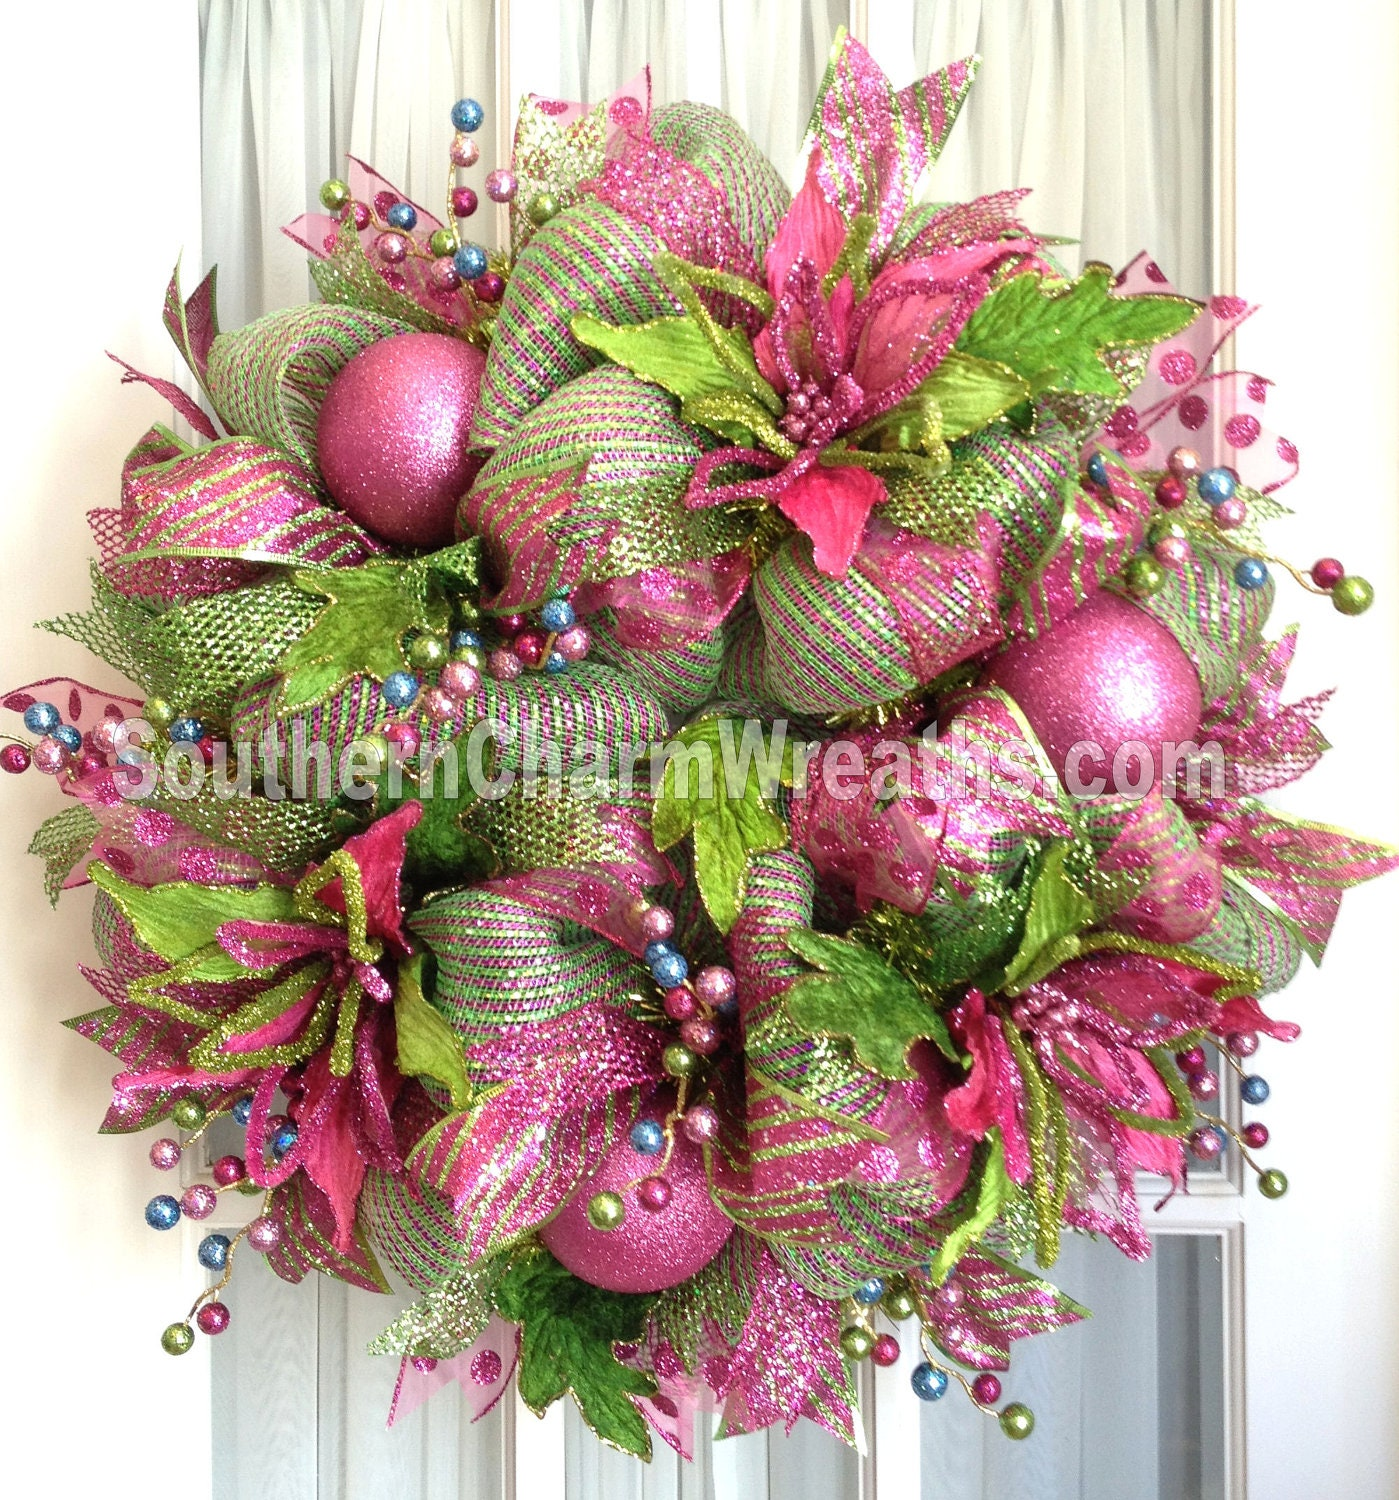 Funky Wall Clocks Deco Mesh Christmas Wreath Hot Pink Lime Green For Door Or